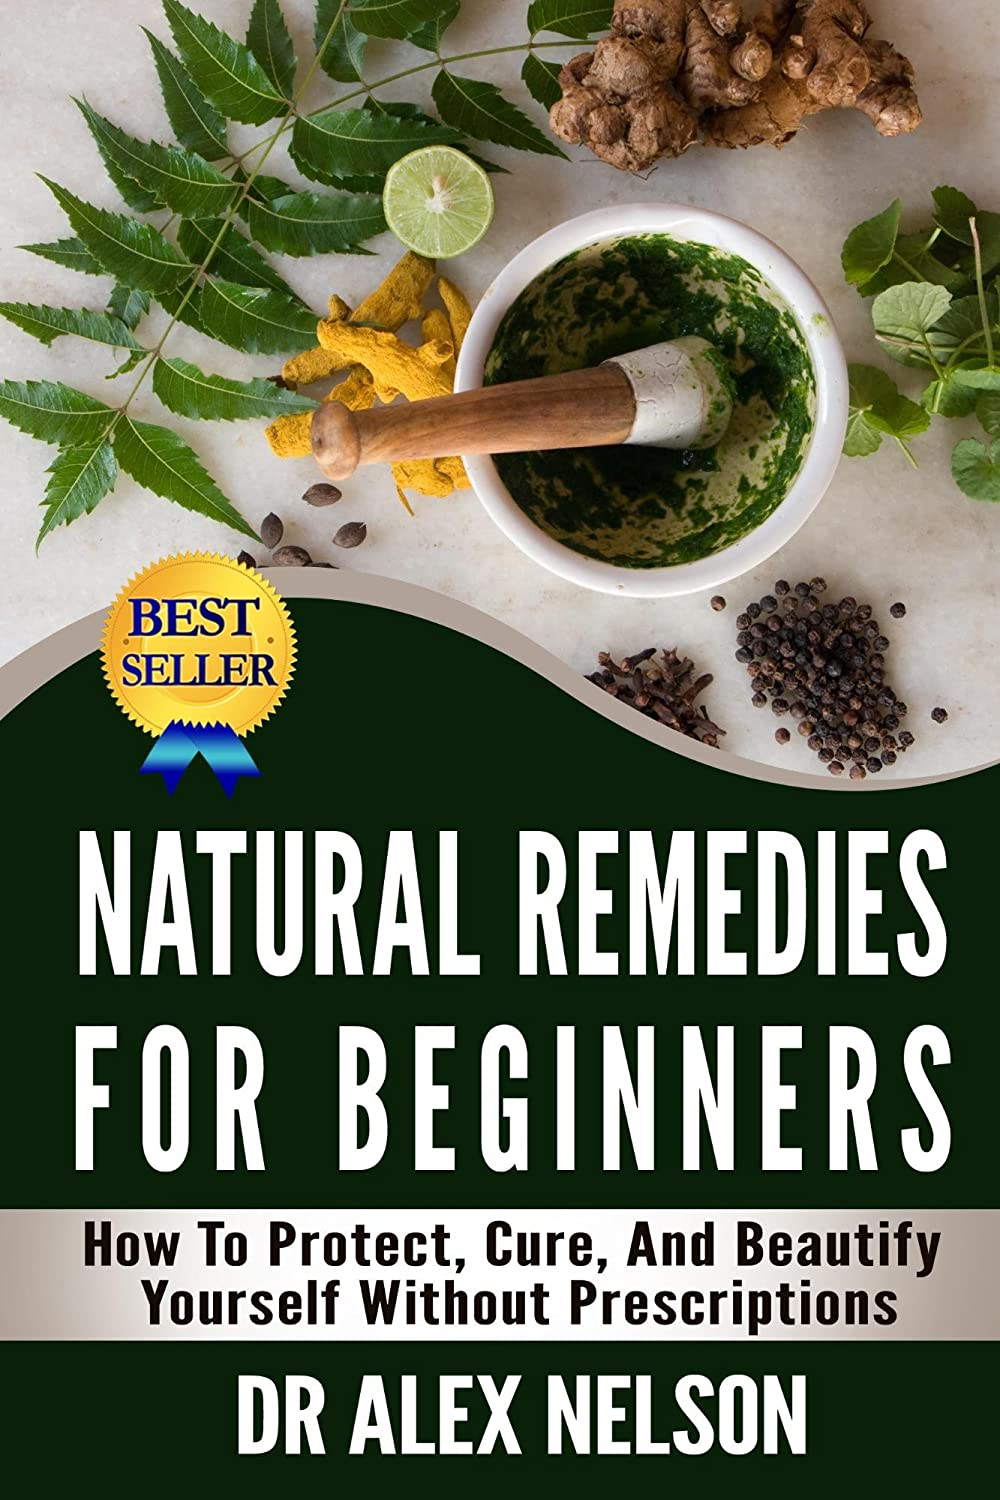 http://www.amazon.com/Natural-Remedies-For-Beginners-Prescriptions-ebook/dp/B00P3EMGOQ/ref=as_sl_pc_ss_til?tag=lettfromahome-20&linkCode=w01&linkId=DHVMAG2OPZLKRPS5&creativeASIN=B00P3EMGOQ